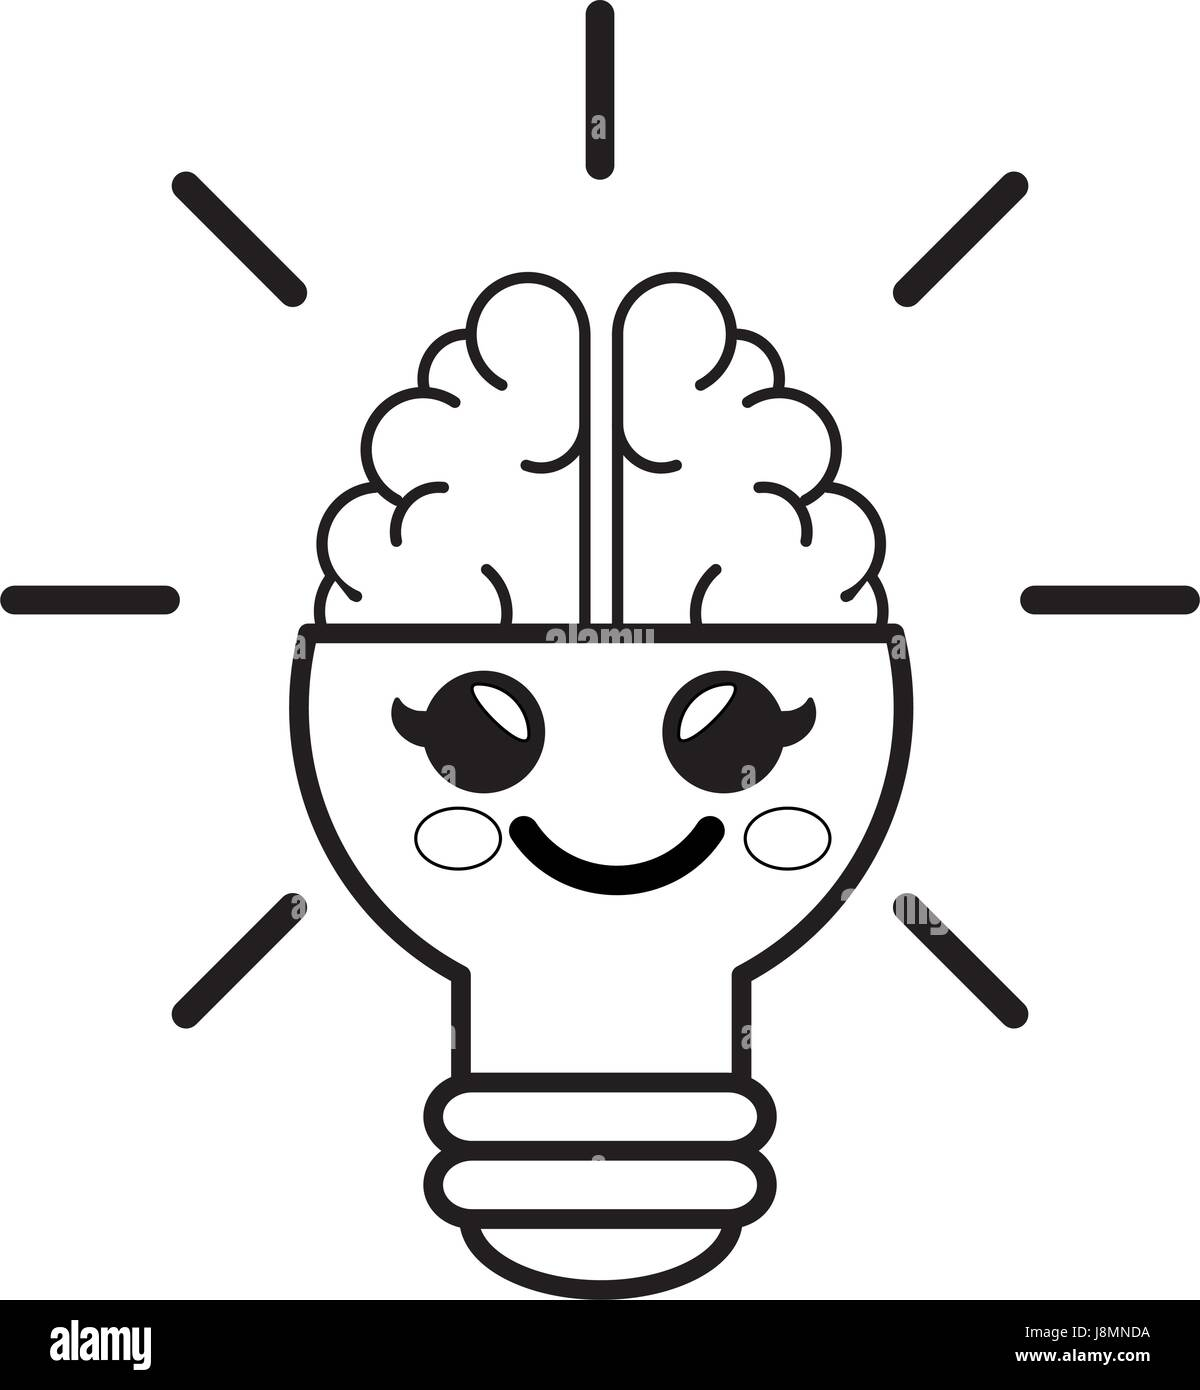 Bulb Cartoon Stock Photos Amp Bulb Cartoon Stock Images Alamy